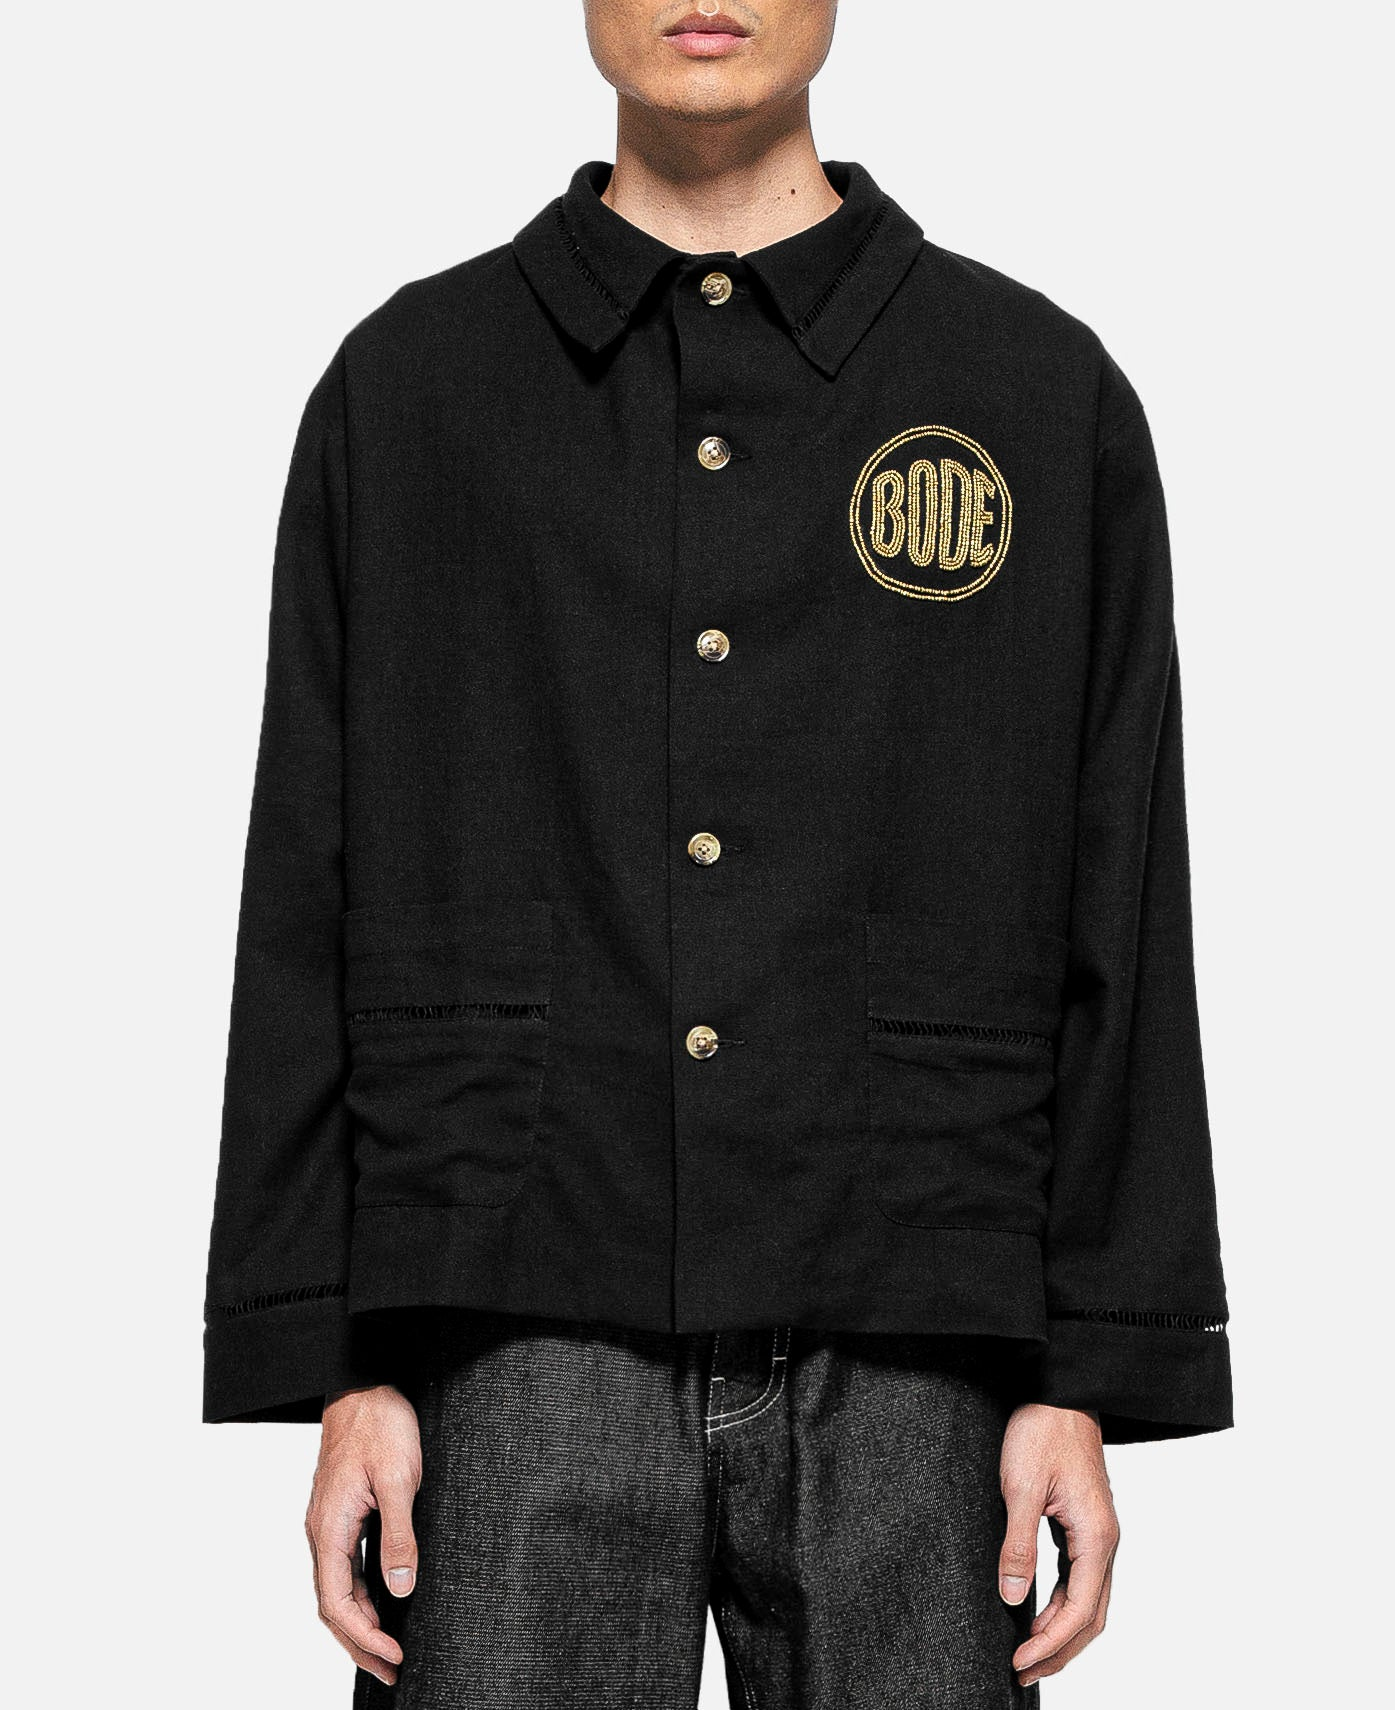 Beaded Bode Workwear Jacket (Black)